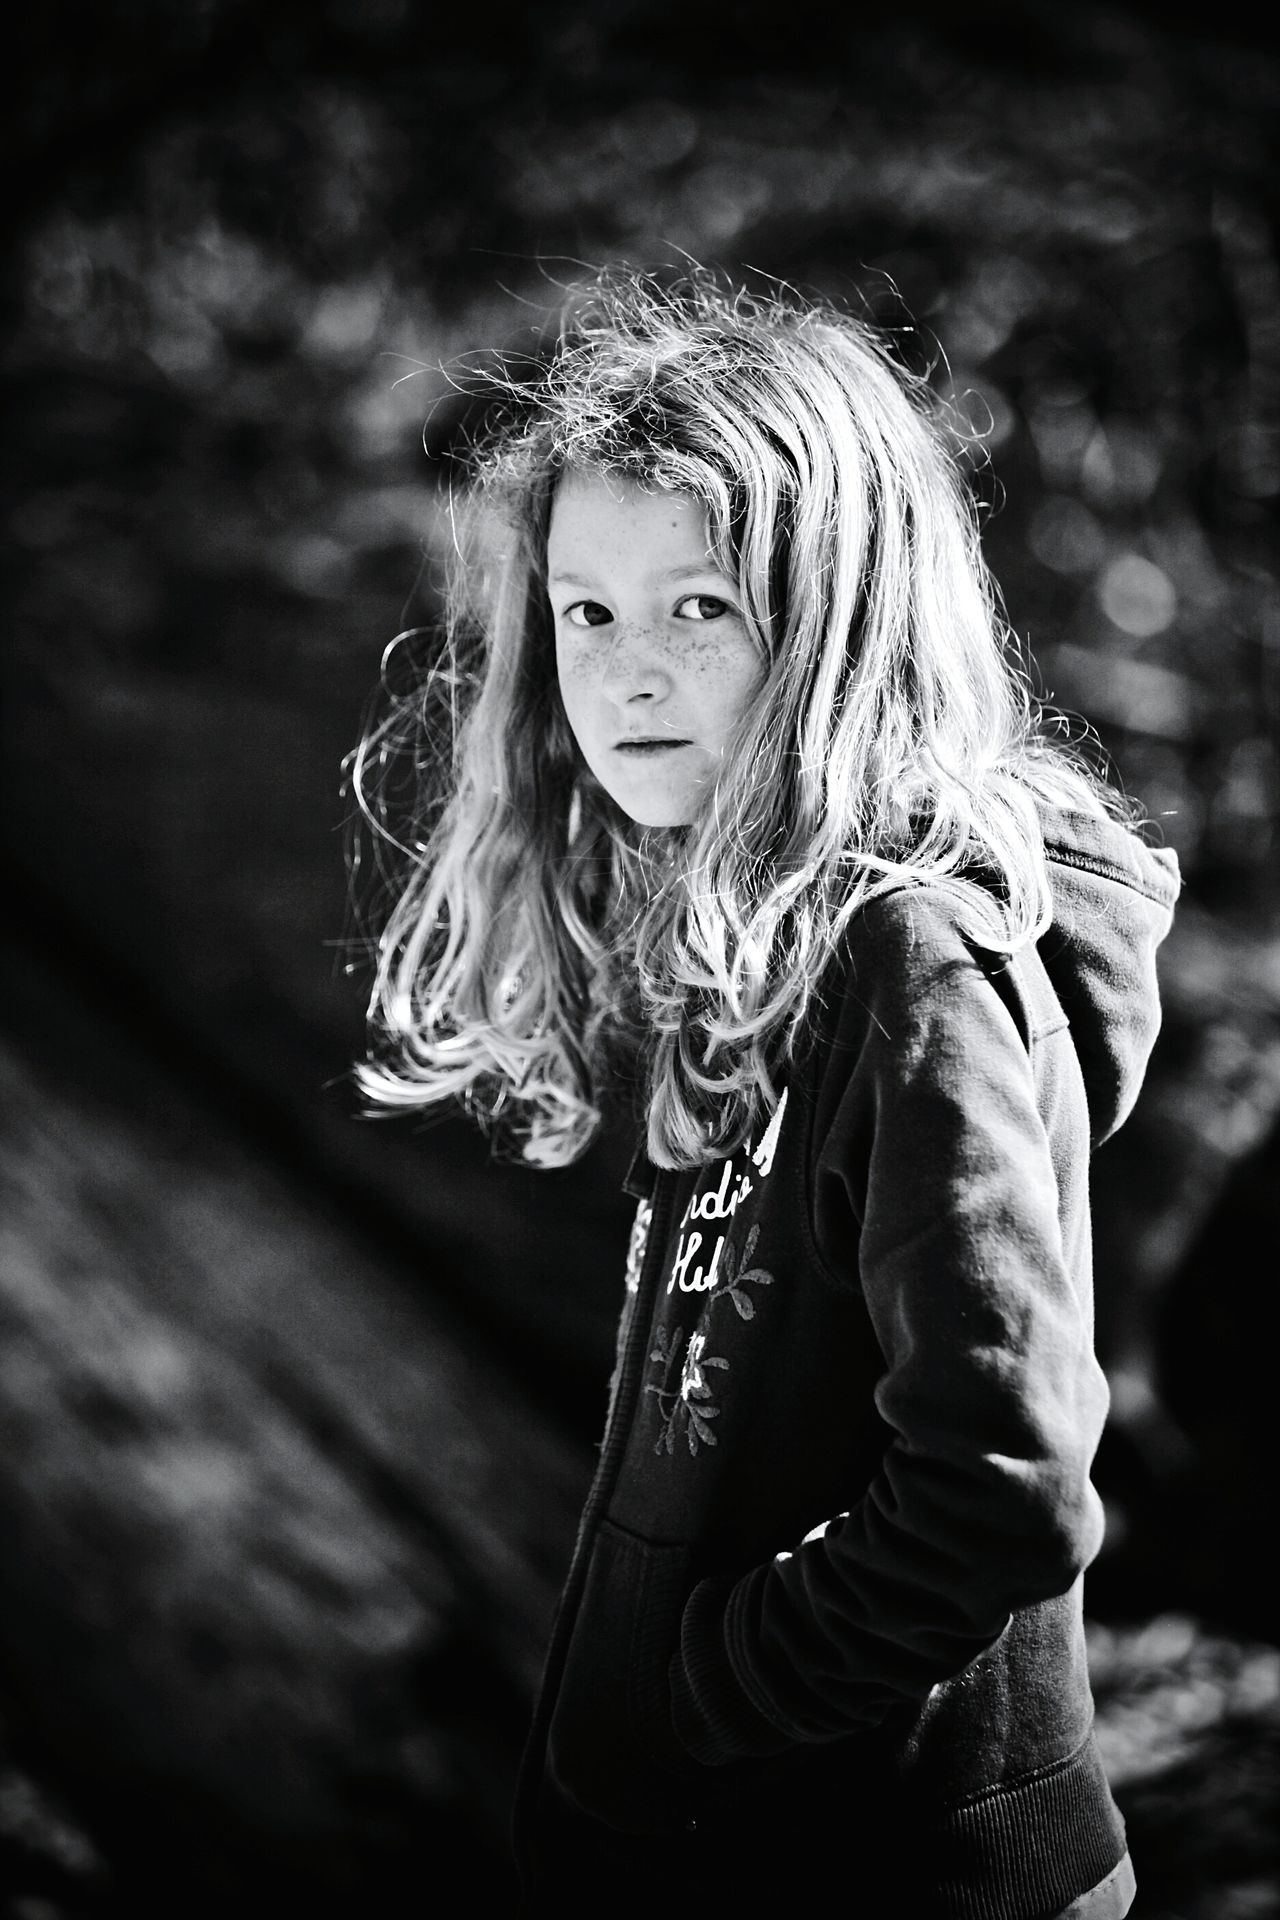 Portrait Child Beauty Fashion One Girl Only One Person People Close-up Hair Childhood Black & White Black And White Blackandwhite Children Photography Beautiful People Freckles Freckled EyeEmNewHere